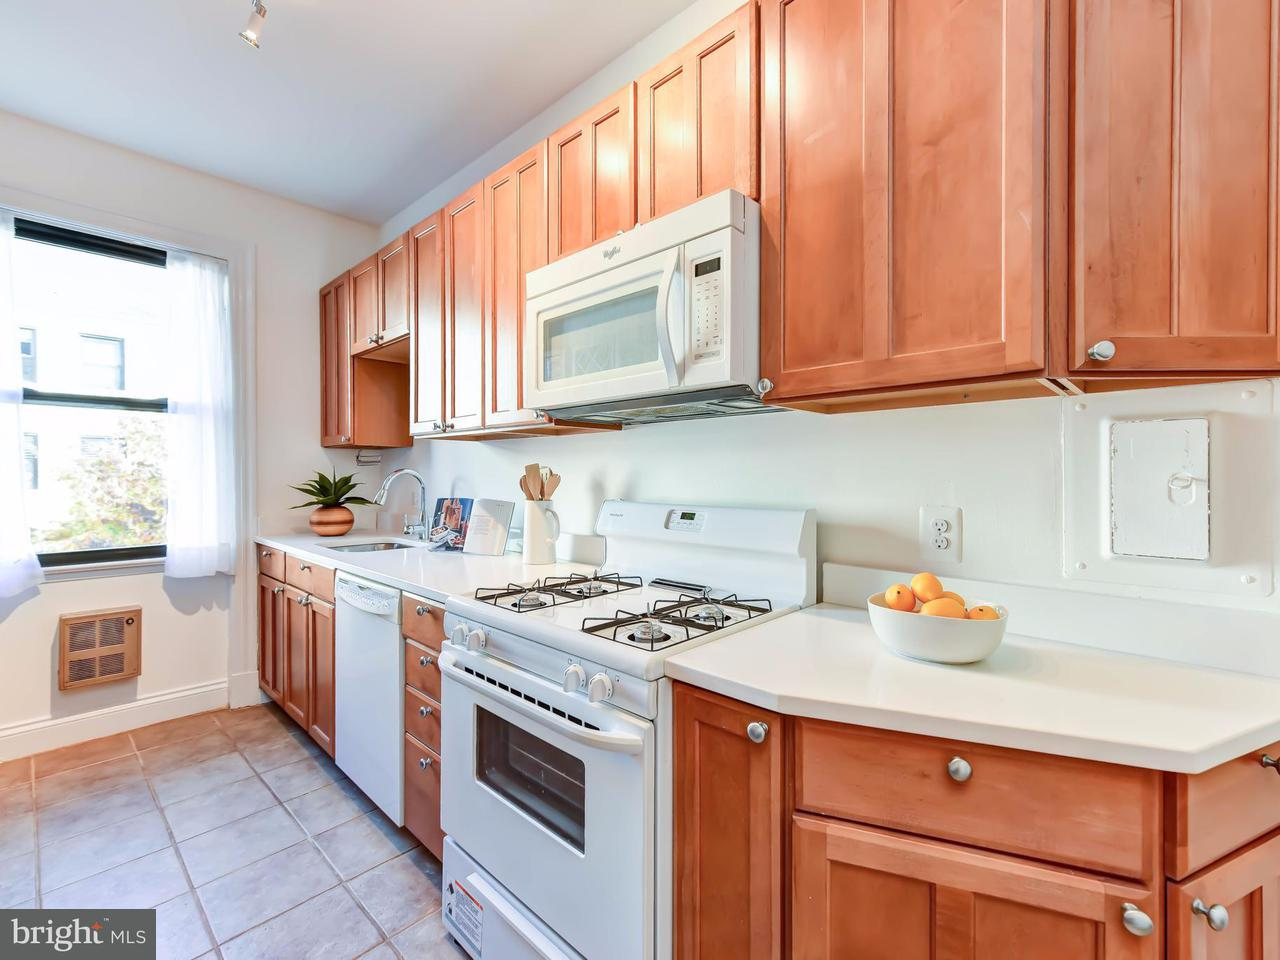 Additional photo for property listing at 3100 Connecticut Ave Nw #323 3100 Connecticut Ave Nw #323 华盛顿市, 哥伦比亚特区 20008 美国